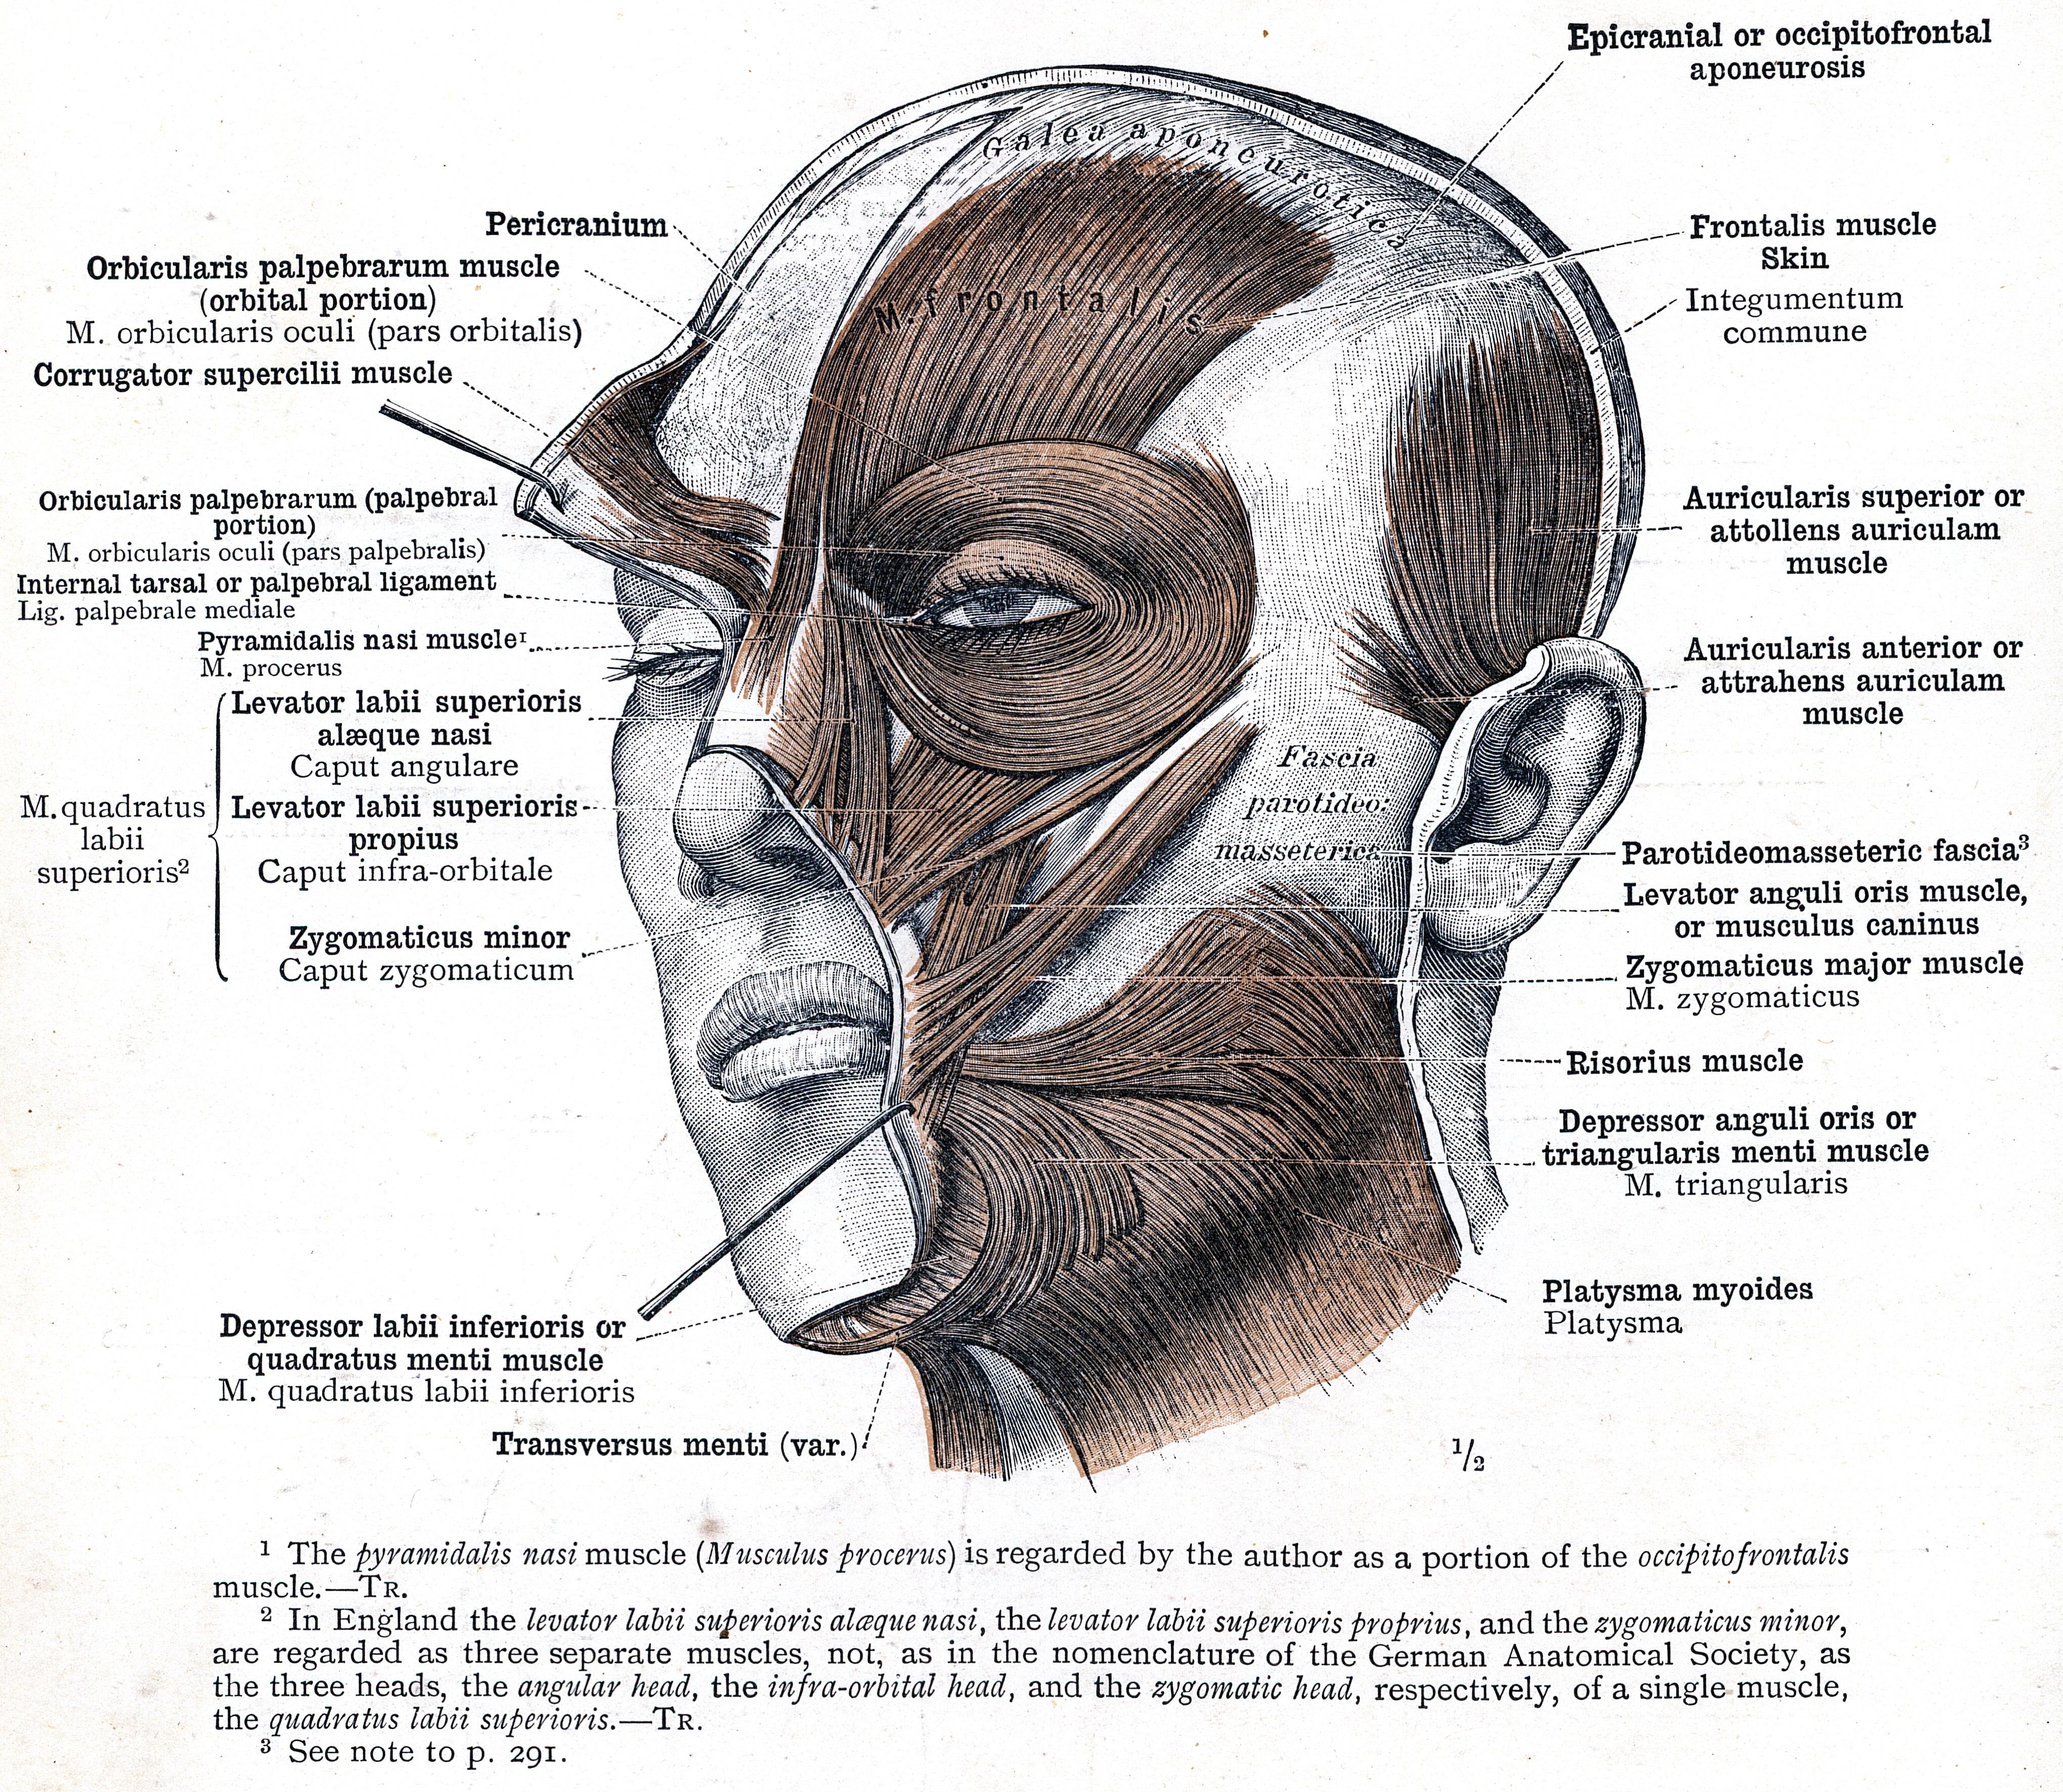 545 The Superficial Layer Of The Muscles Of Facial Expression And